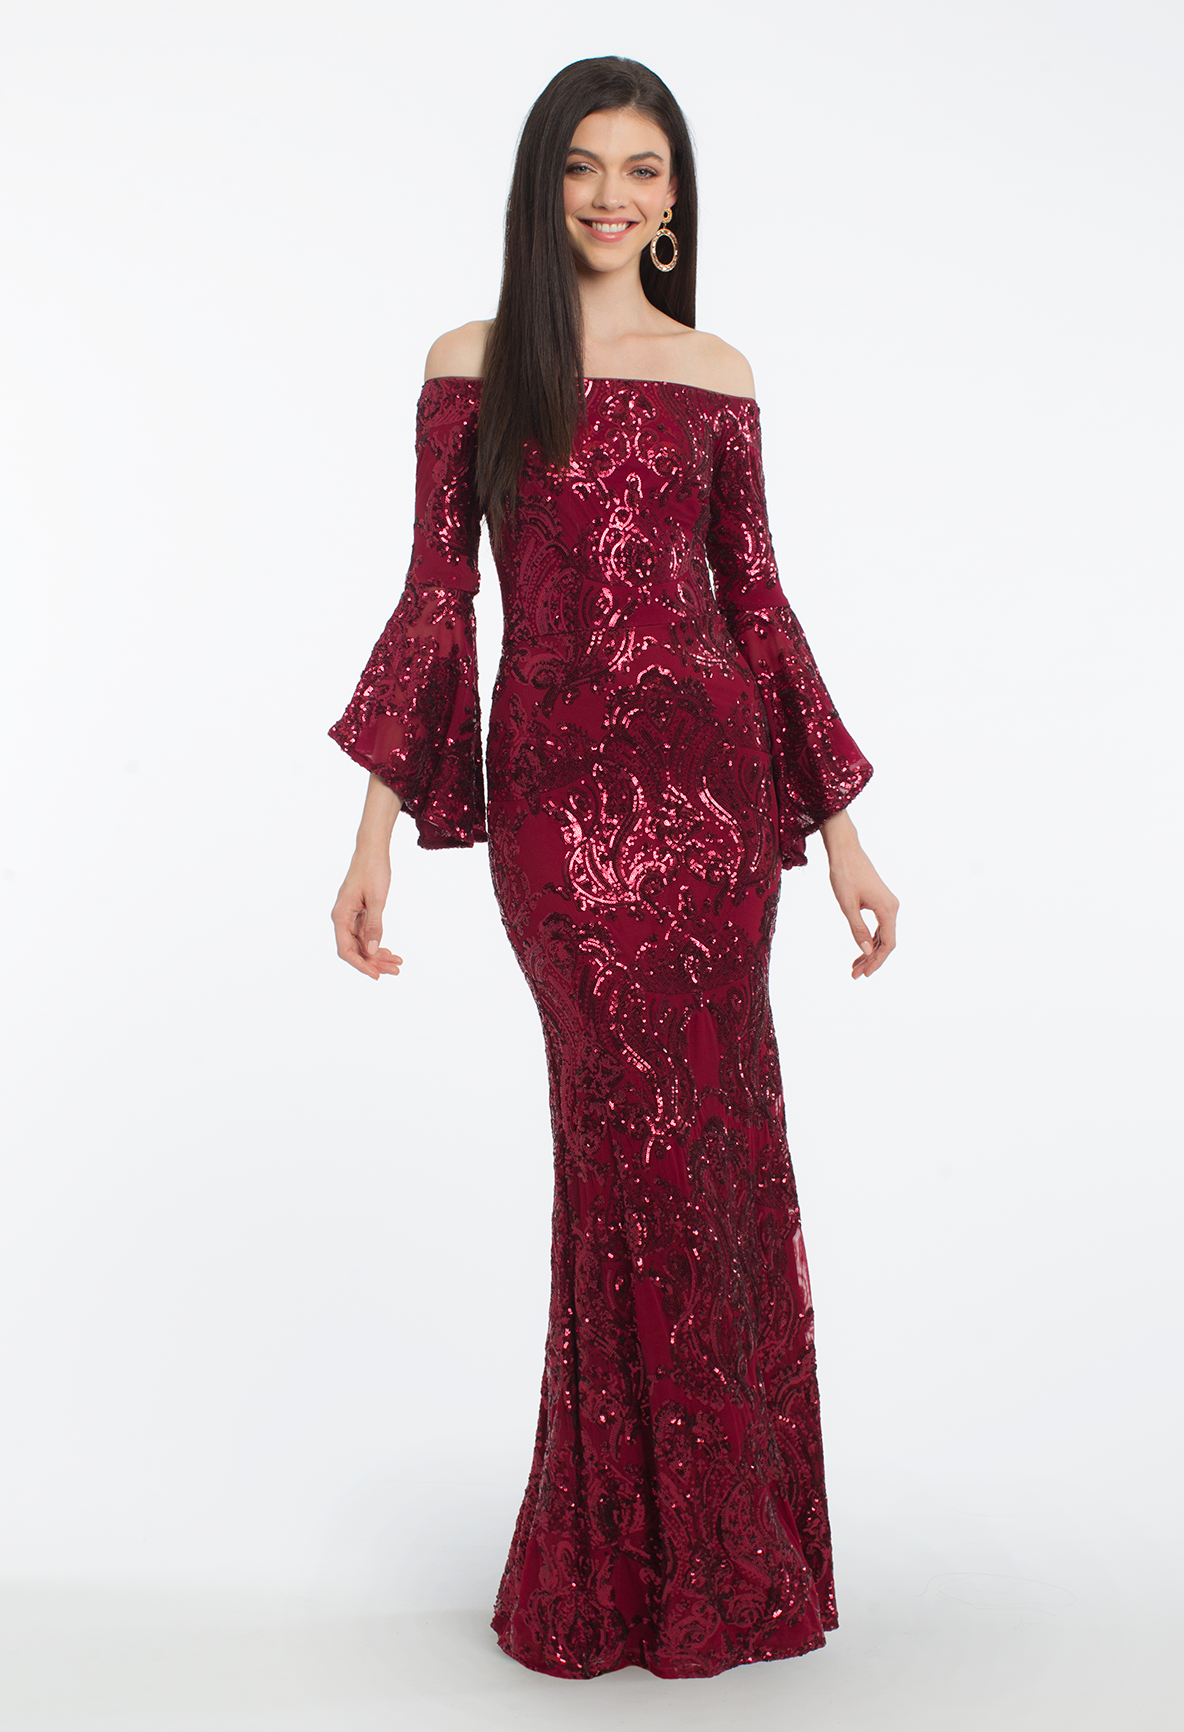 This Evening Gown Was Made For An Enchantress With Its Off The Shoulder Neckline Fully Sequined Bodice And Bell Sleeves T Dresses Prom Outfits Sequin Dress [ 1732 x 1184 Pixel ]